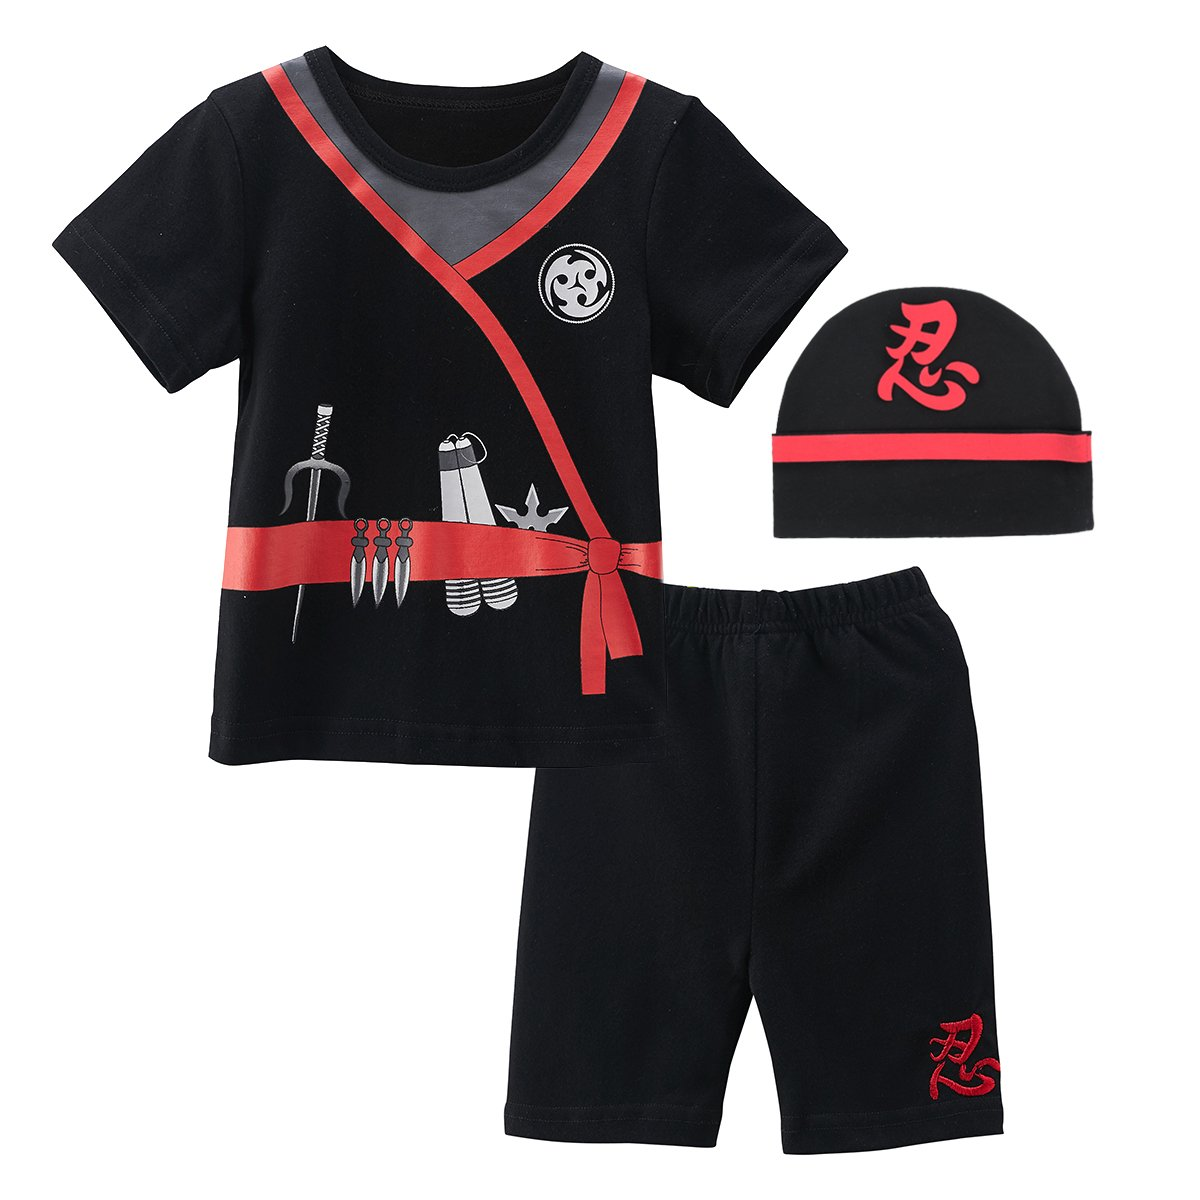 Mombebe Baby Boys 3 Pieces Ninja Short Clothing Set with Hat